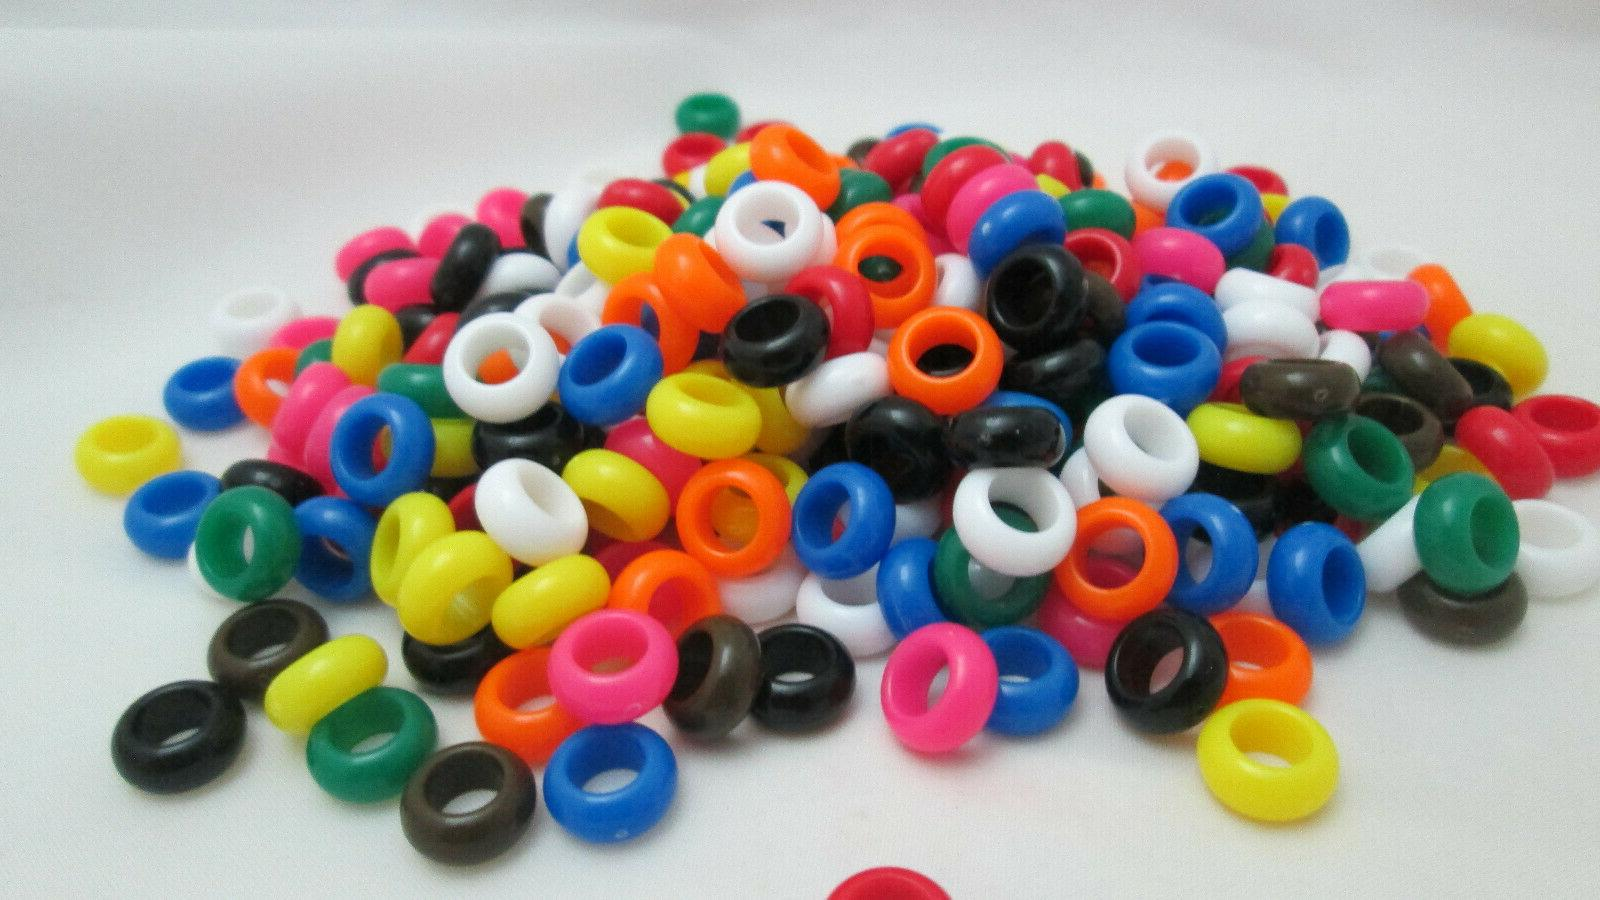 300 Narrow Round Hole Beads - Assorted